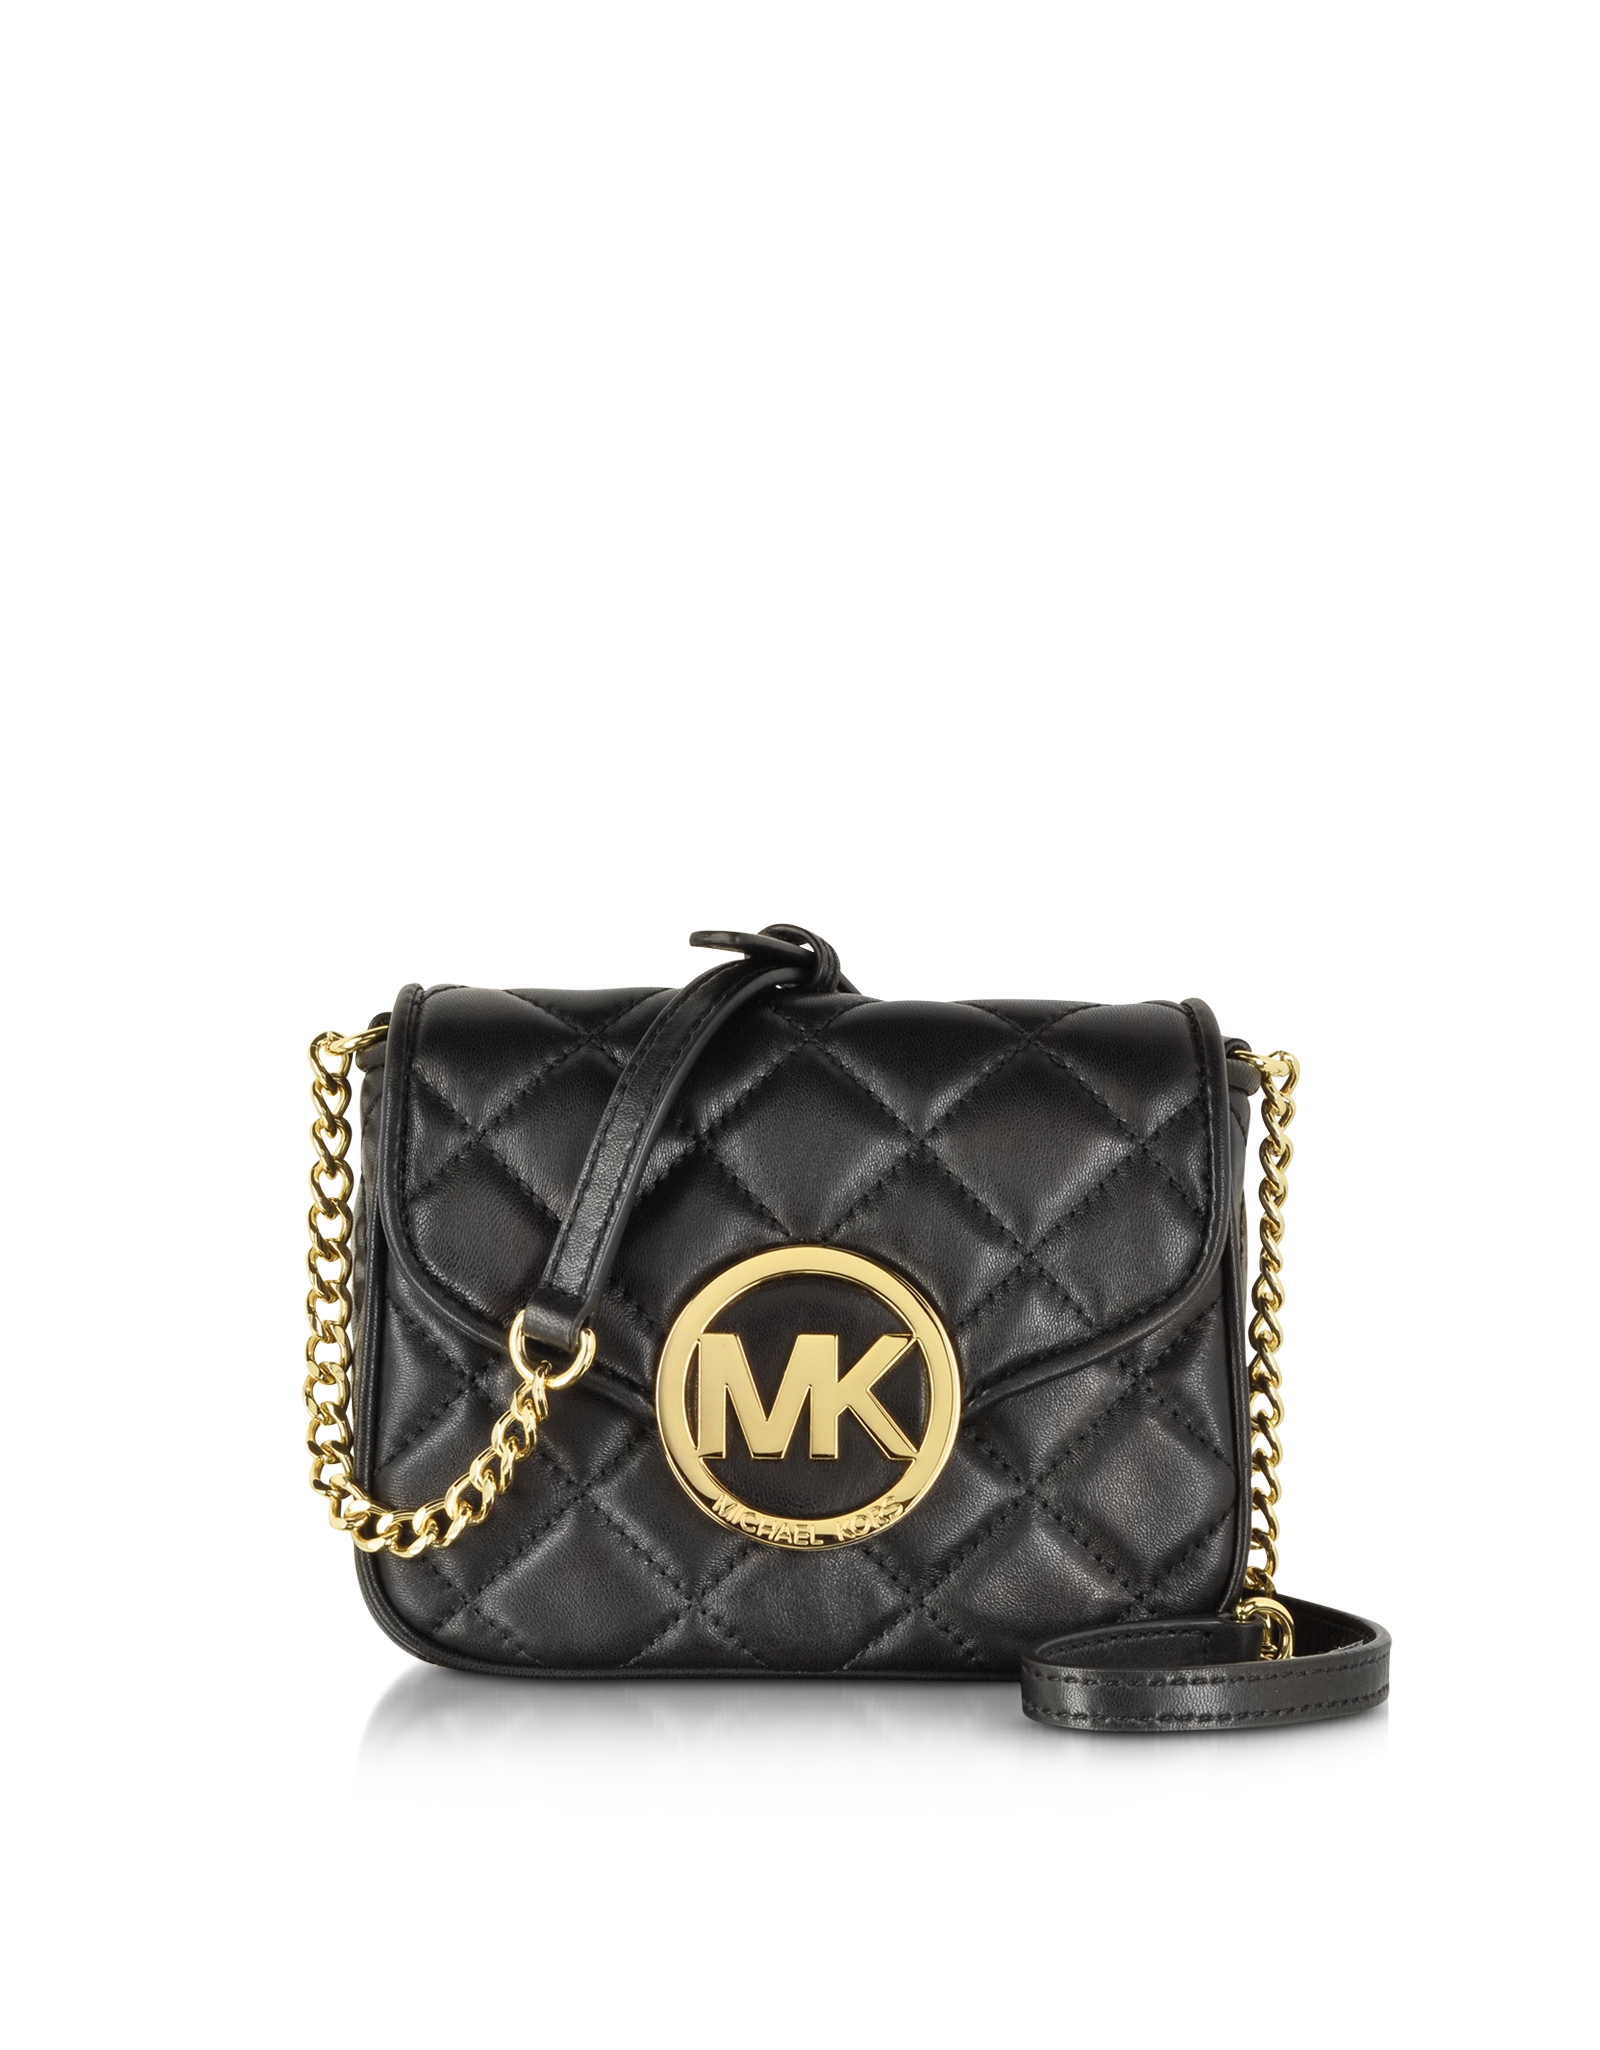 Michael kors Small Fulton Quilted Crossbody Bag in Black | Lyst : michael kors fulton quilted tote - Adamdwight.com